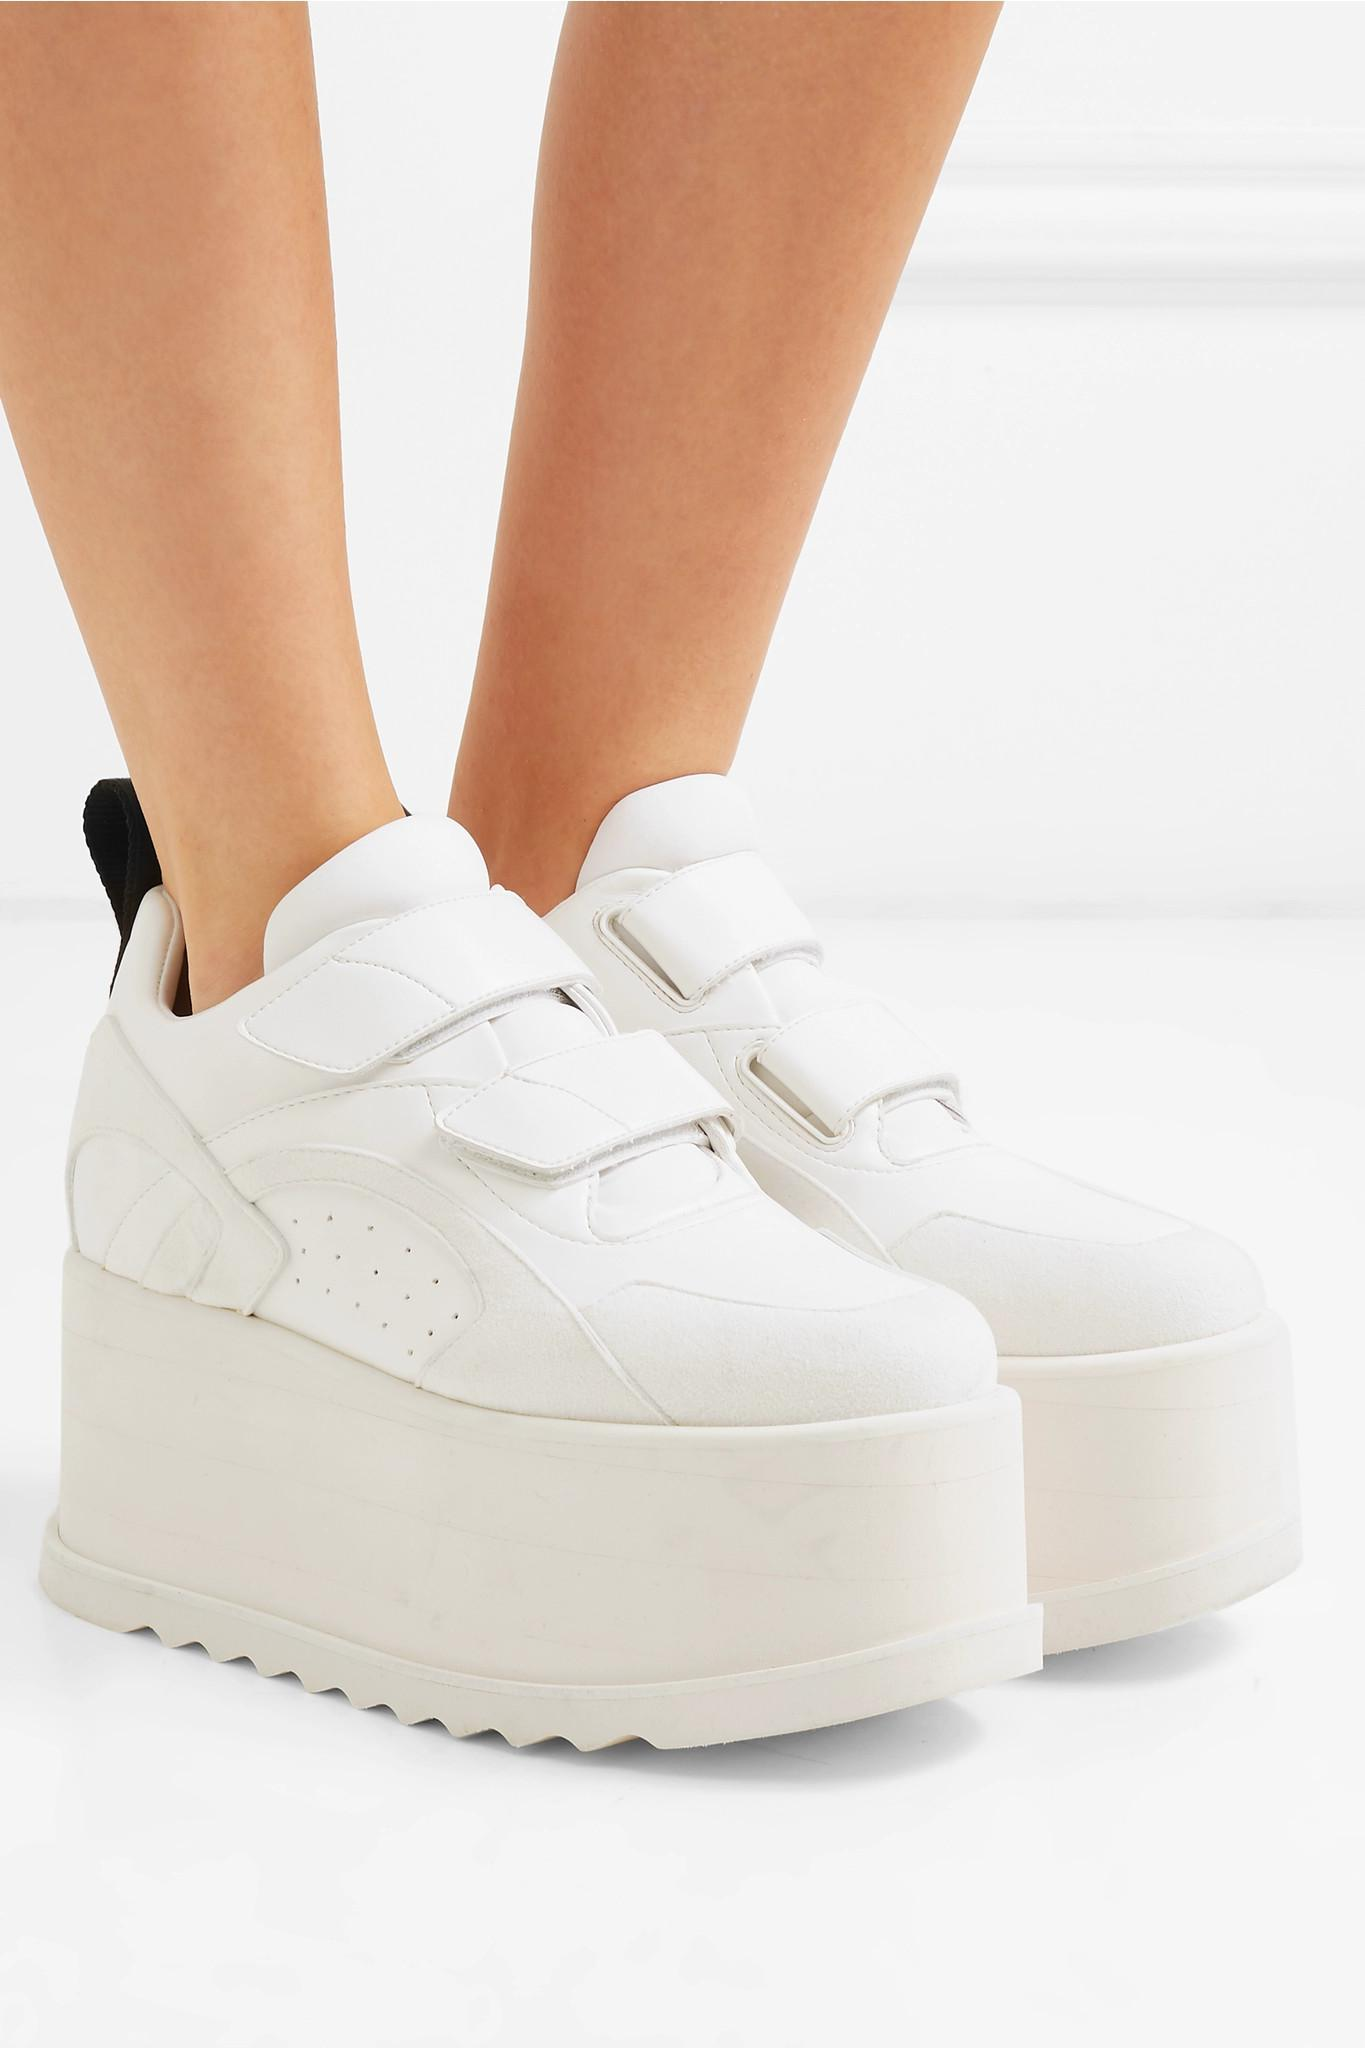 65c00361c0f ... Leather-trimmed Faux Suede Platform Sneakers - Lyst. View fullscreen